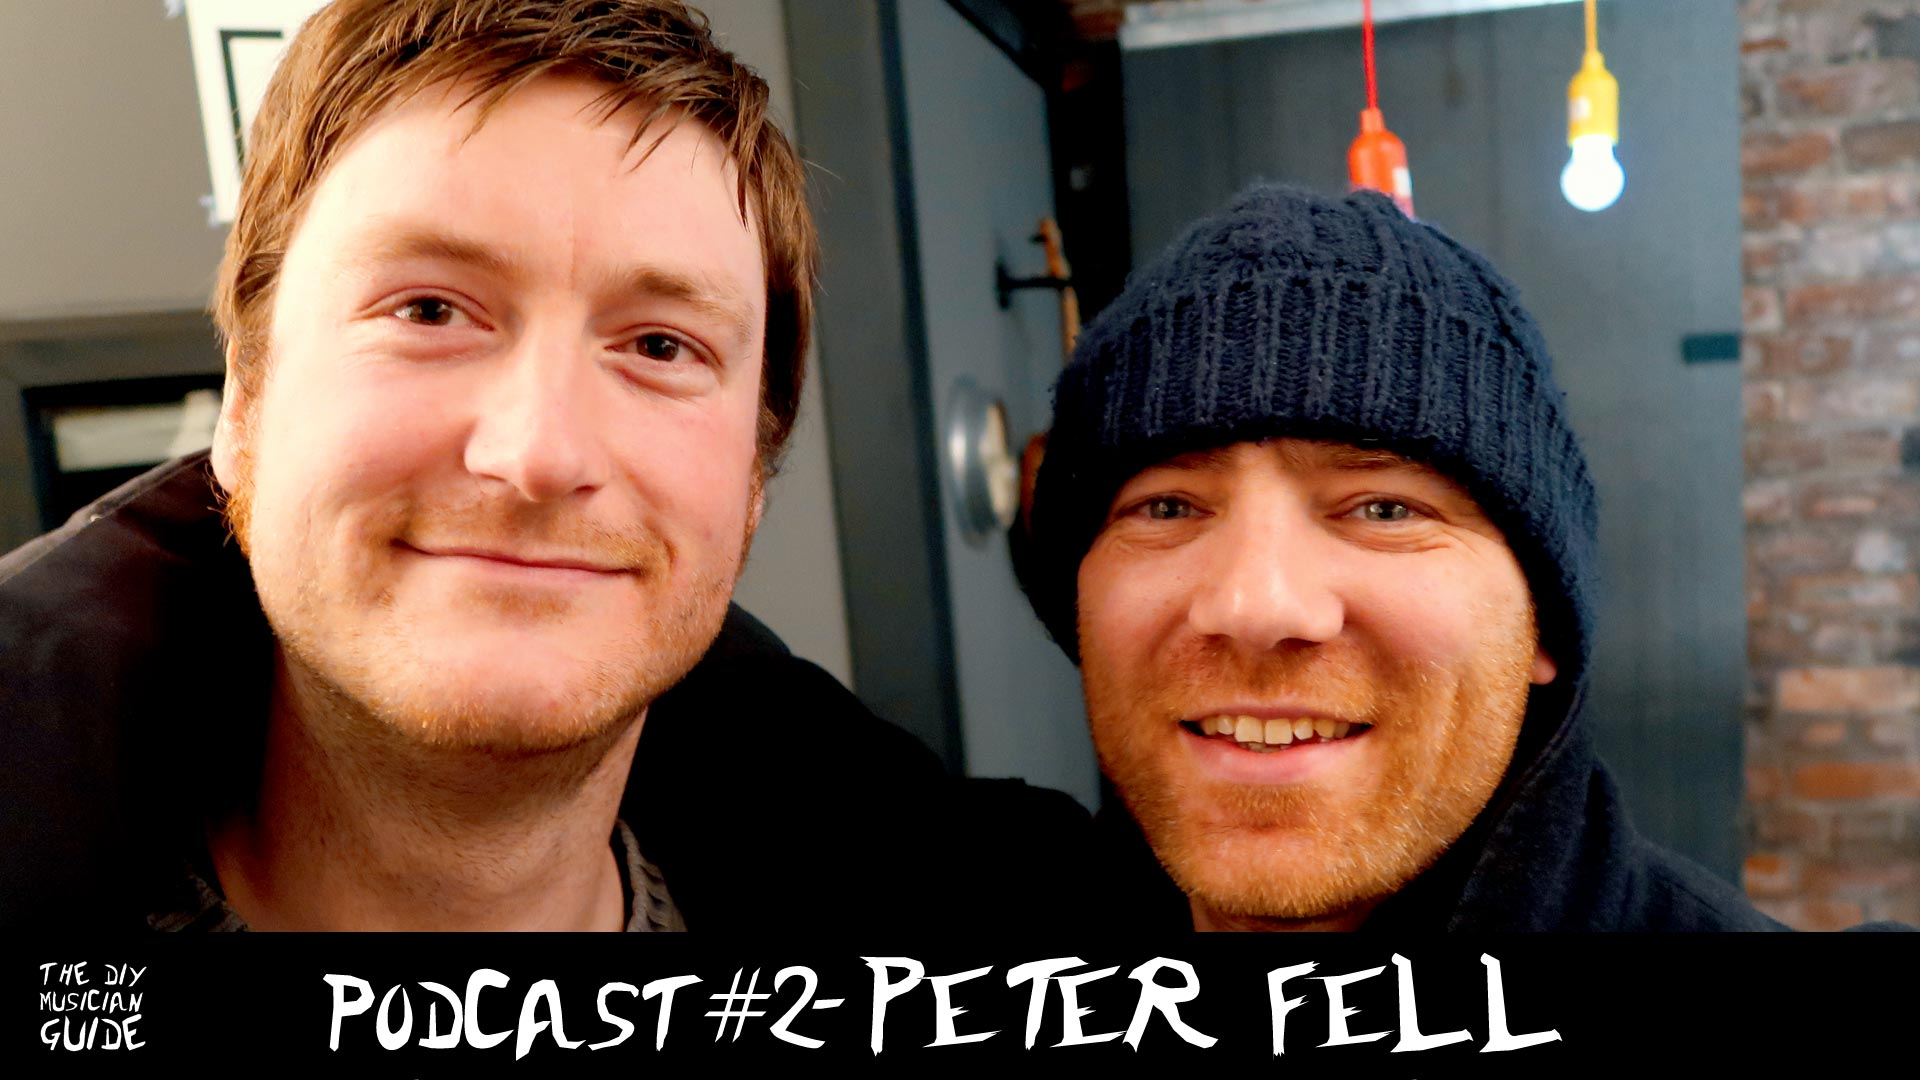 Peter Fell | The DIY Musician Guide Podcast #2